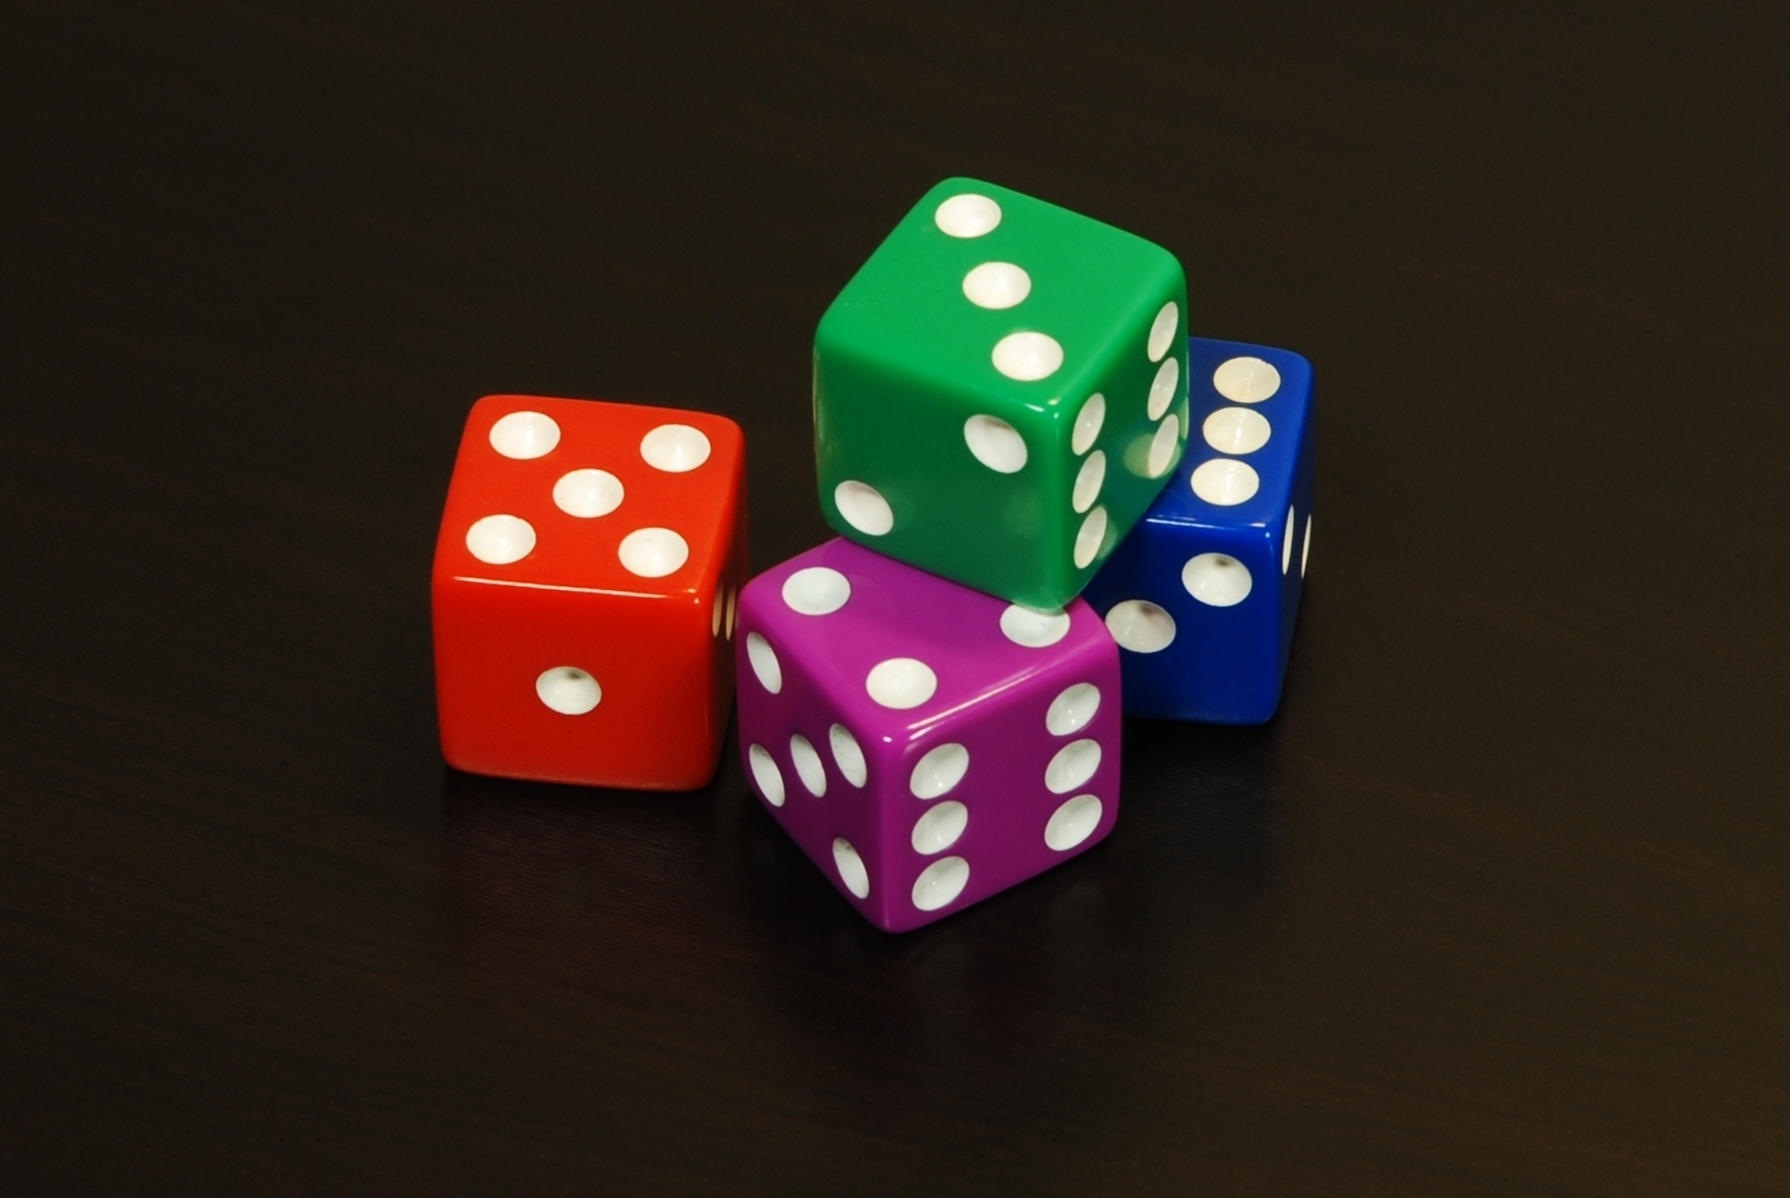 A Graphical Dice Simulator